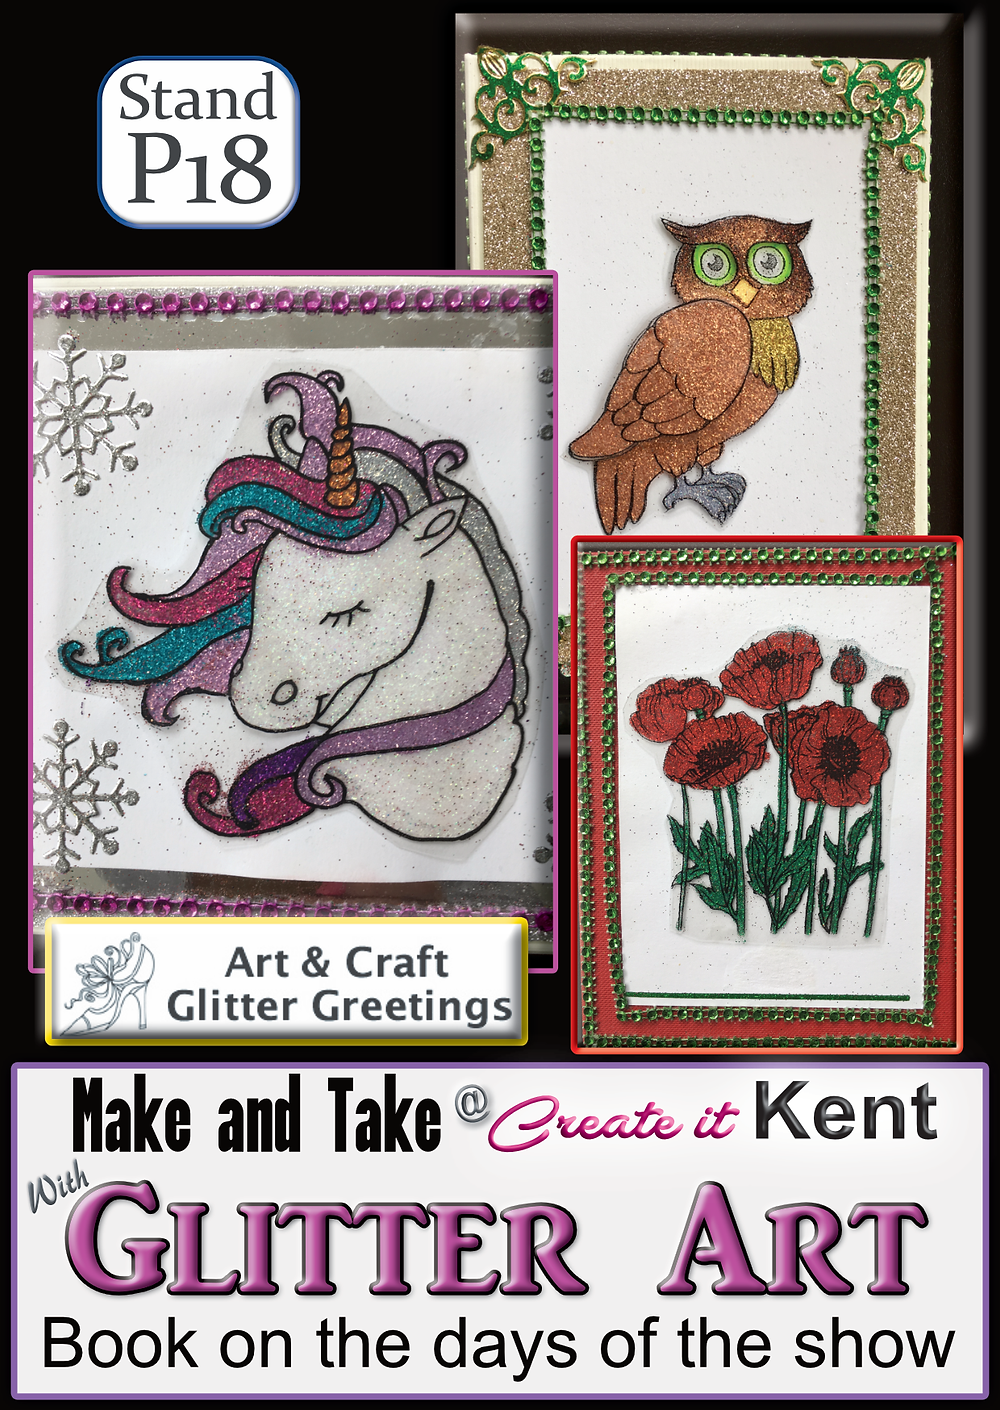 Art and Craft Glitter Greetings at Create it Kent